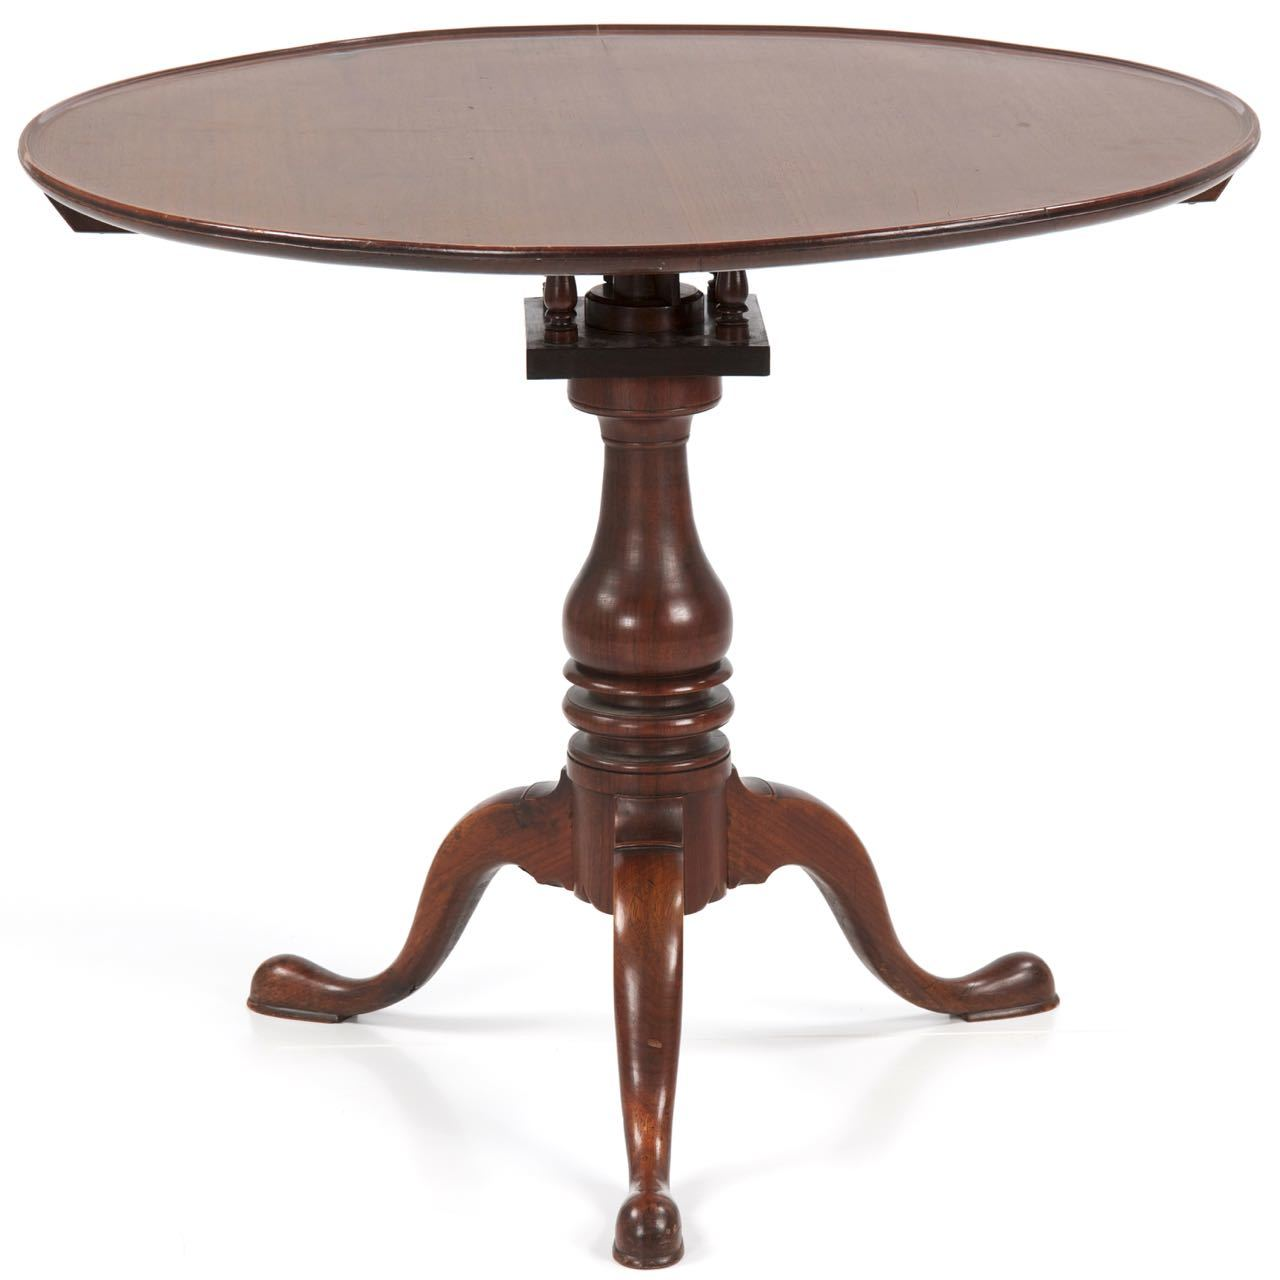 american queen anne walnut tilting tea table chester county antique eugene accent high top dining set large patio cover small and chairs round industrial coffee garden parasol